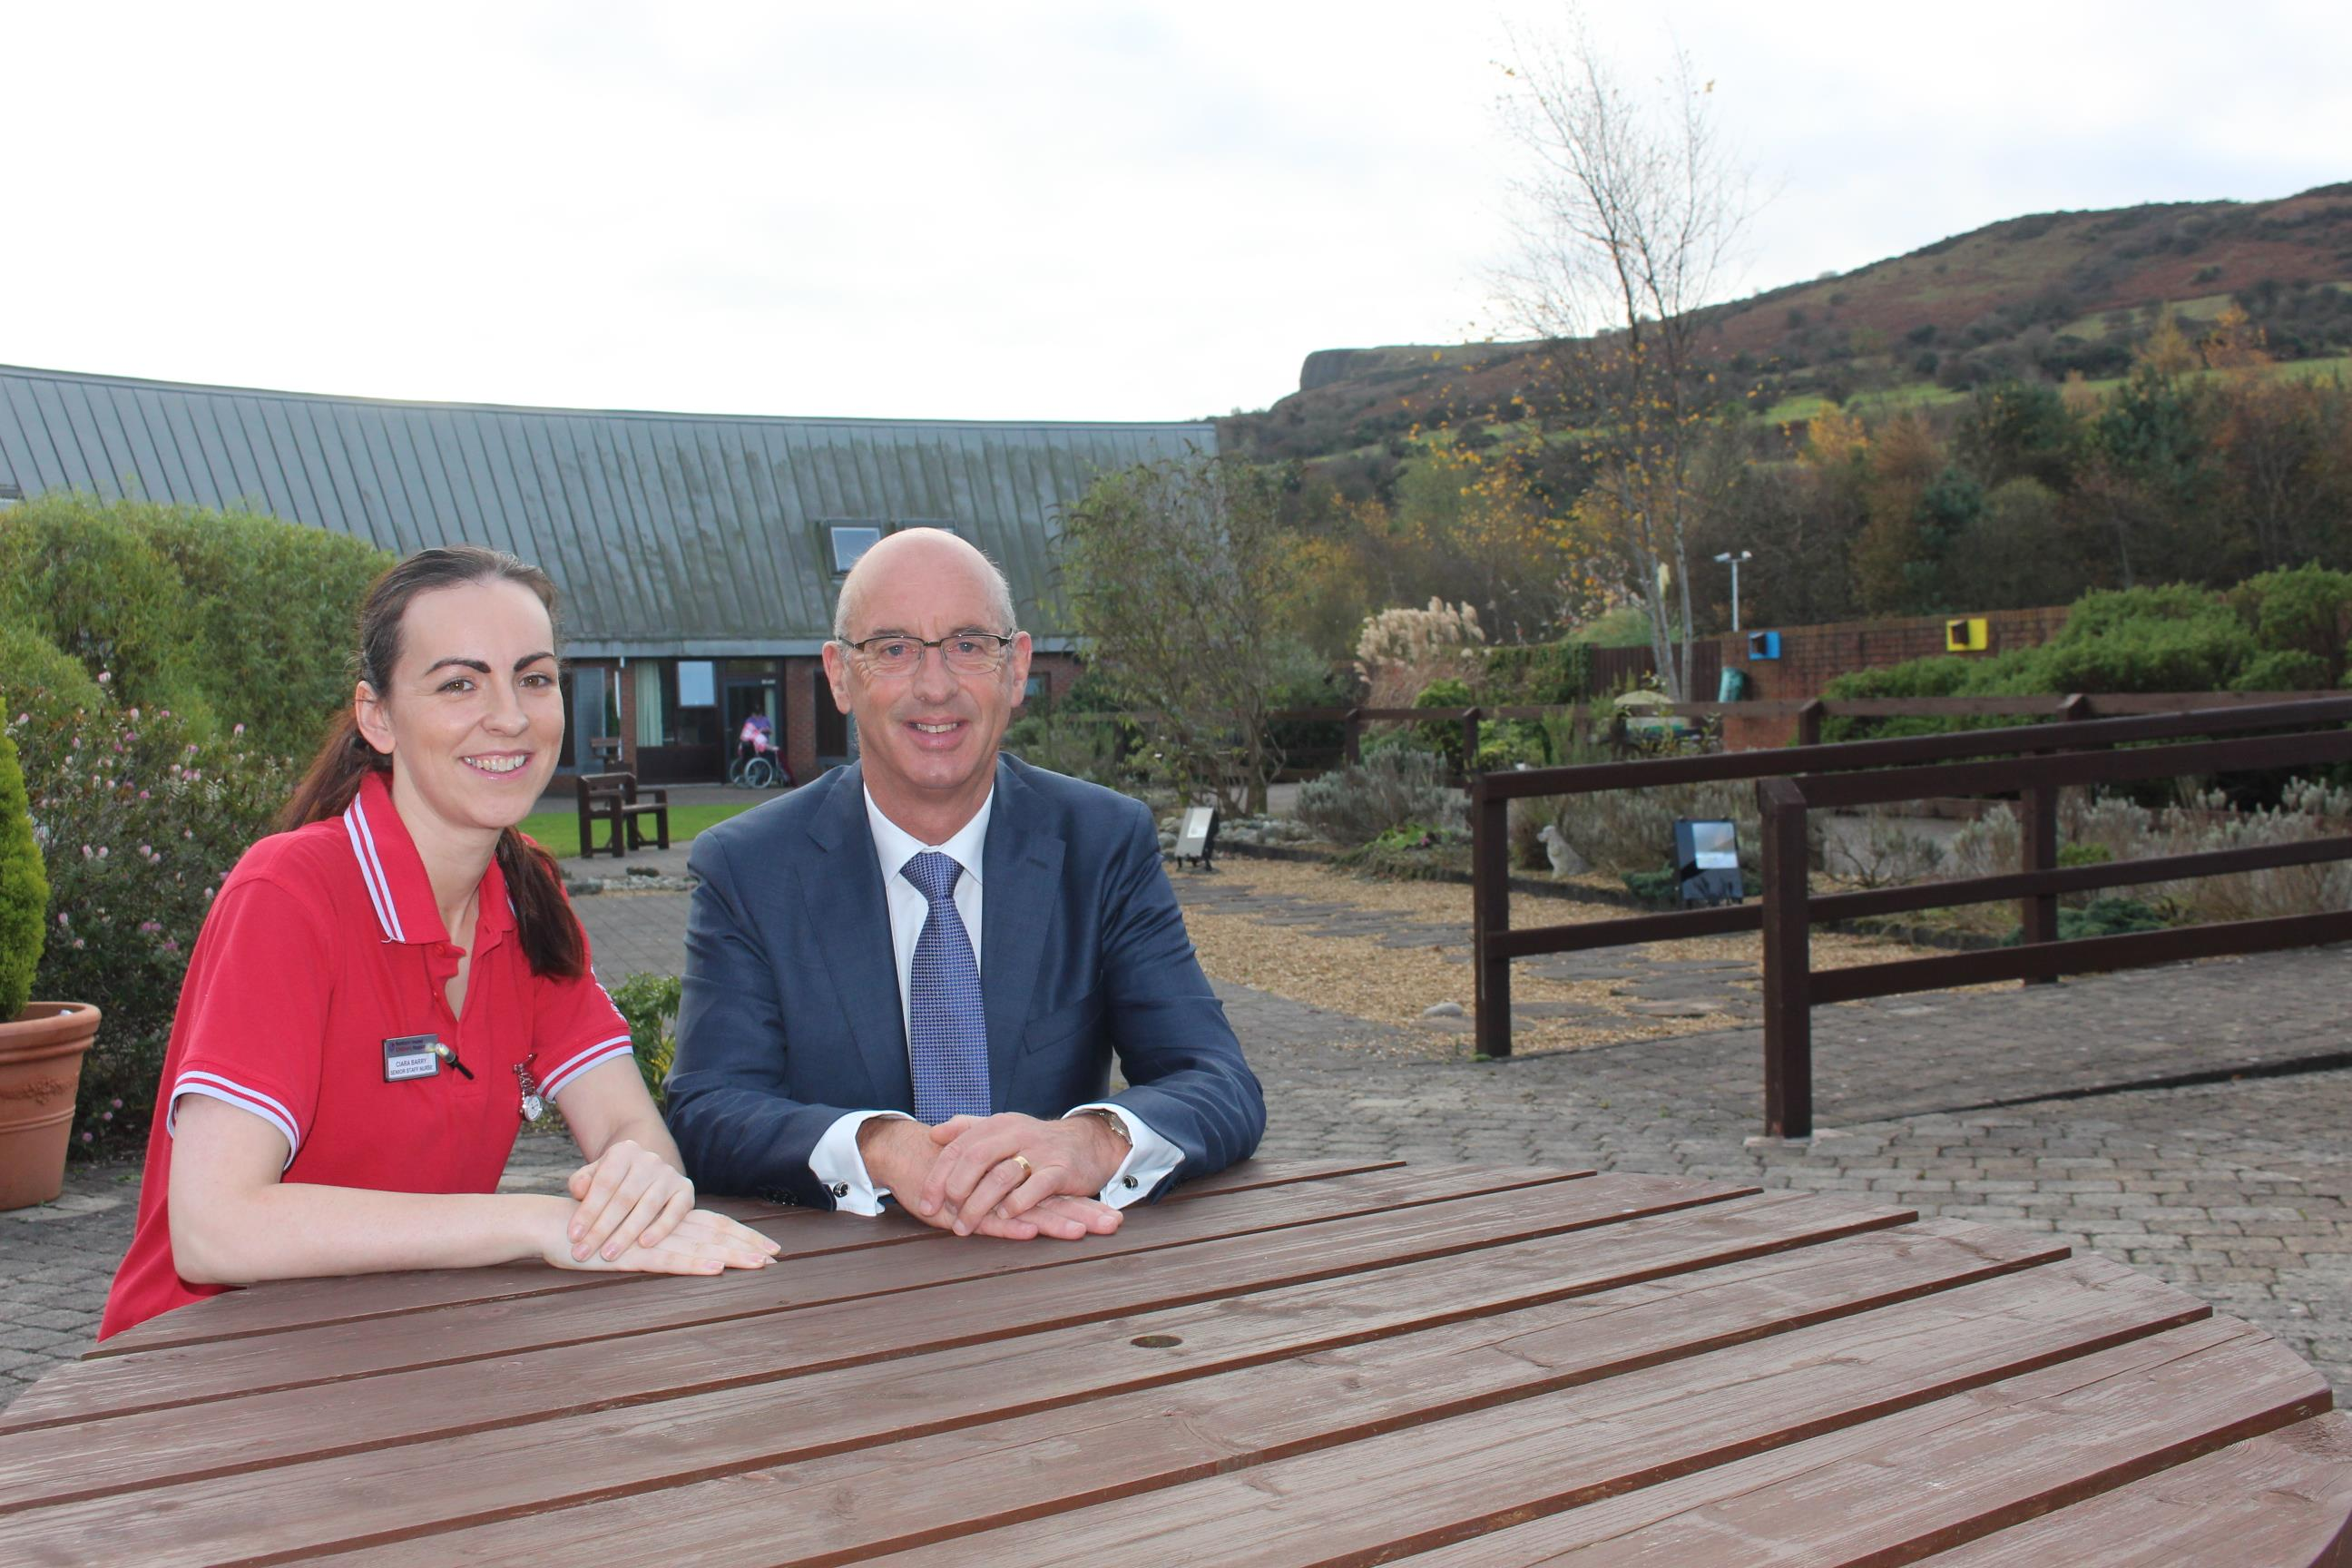 Software firm provides a solution for NI Children's Hospice